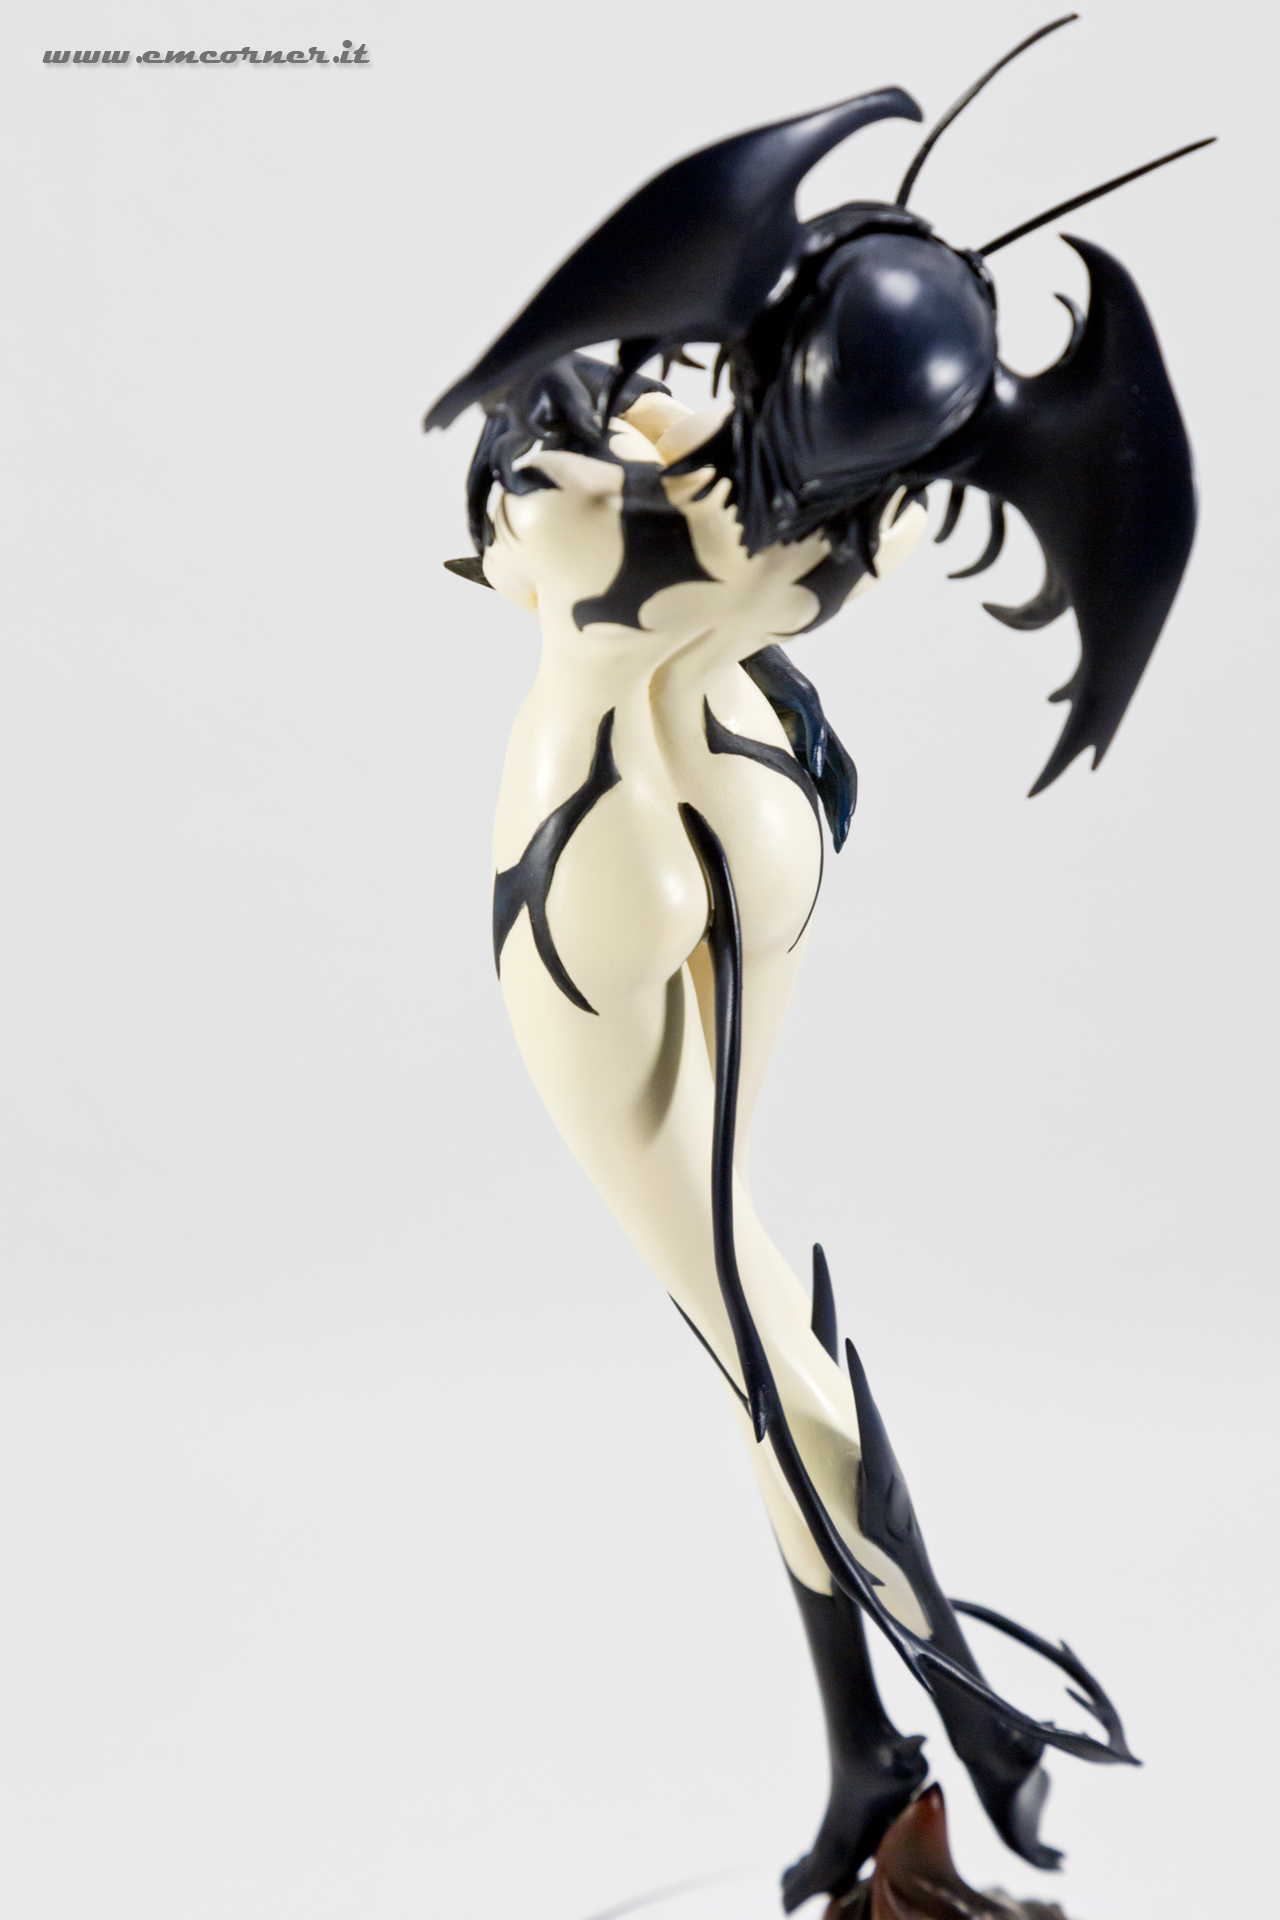 new-line-devilman-devil-lady-pre-painted-coldcast-2_-emcorner-it_-3